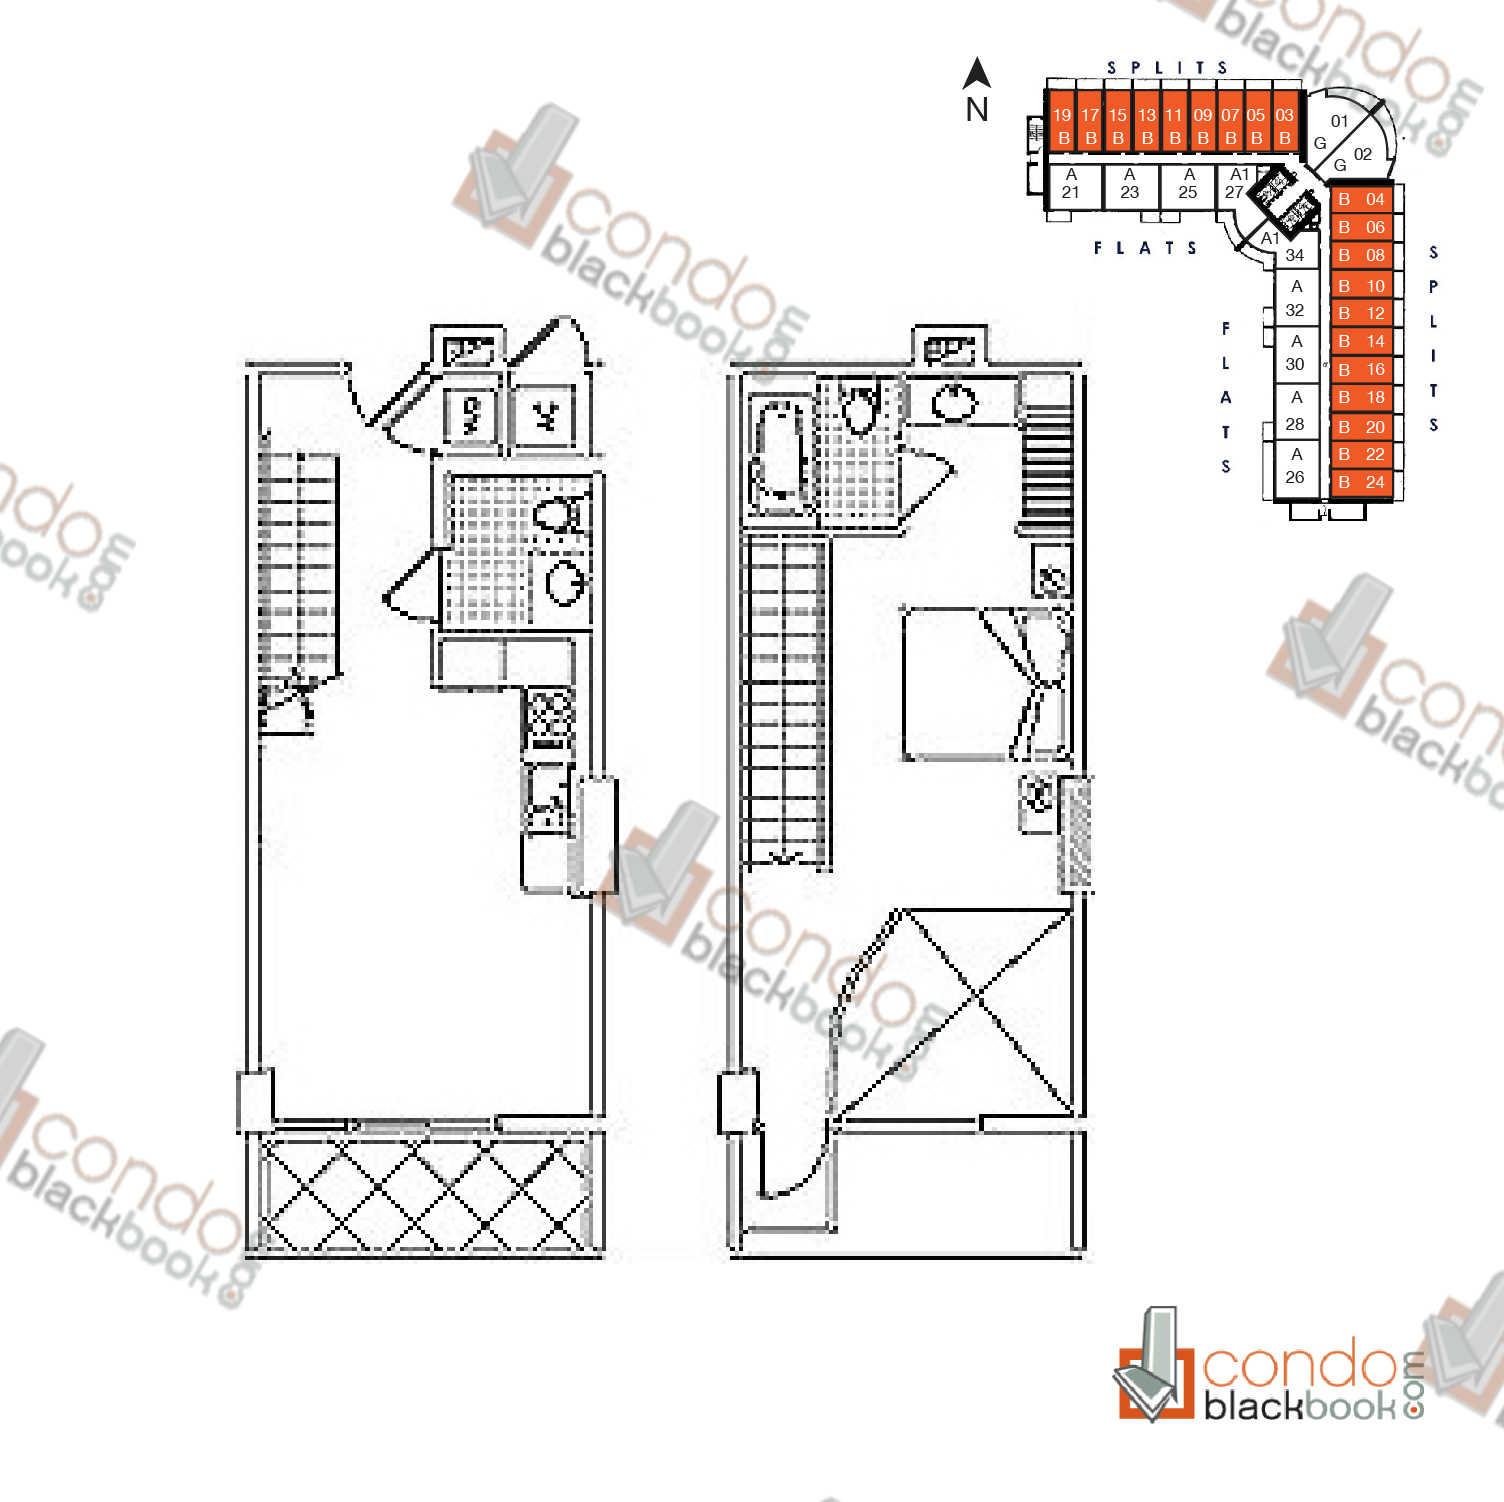 Floor plan for Neo Vertika Brickell Miami, model Split B, line 03-24, 1/1.5 bedrooms, 741 sq ft